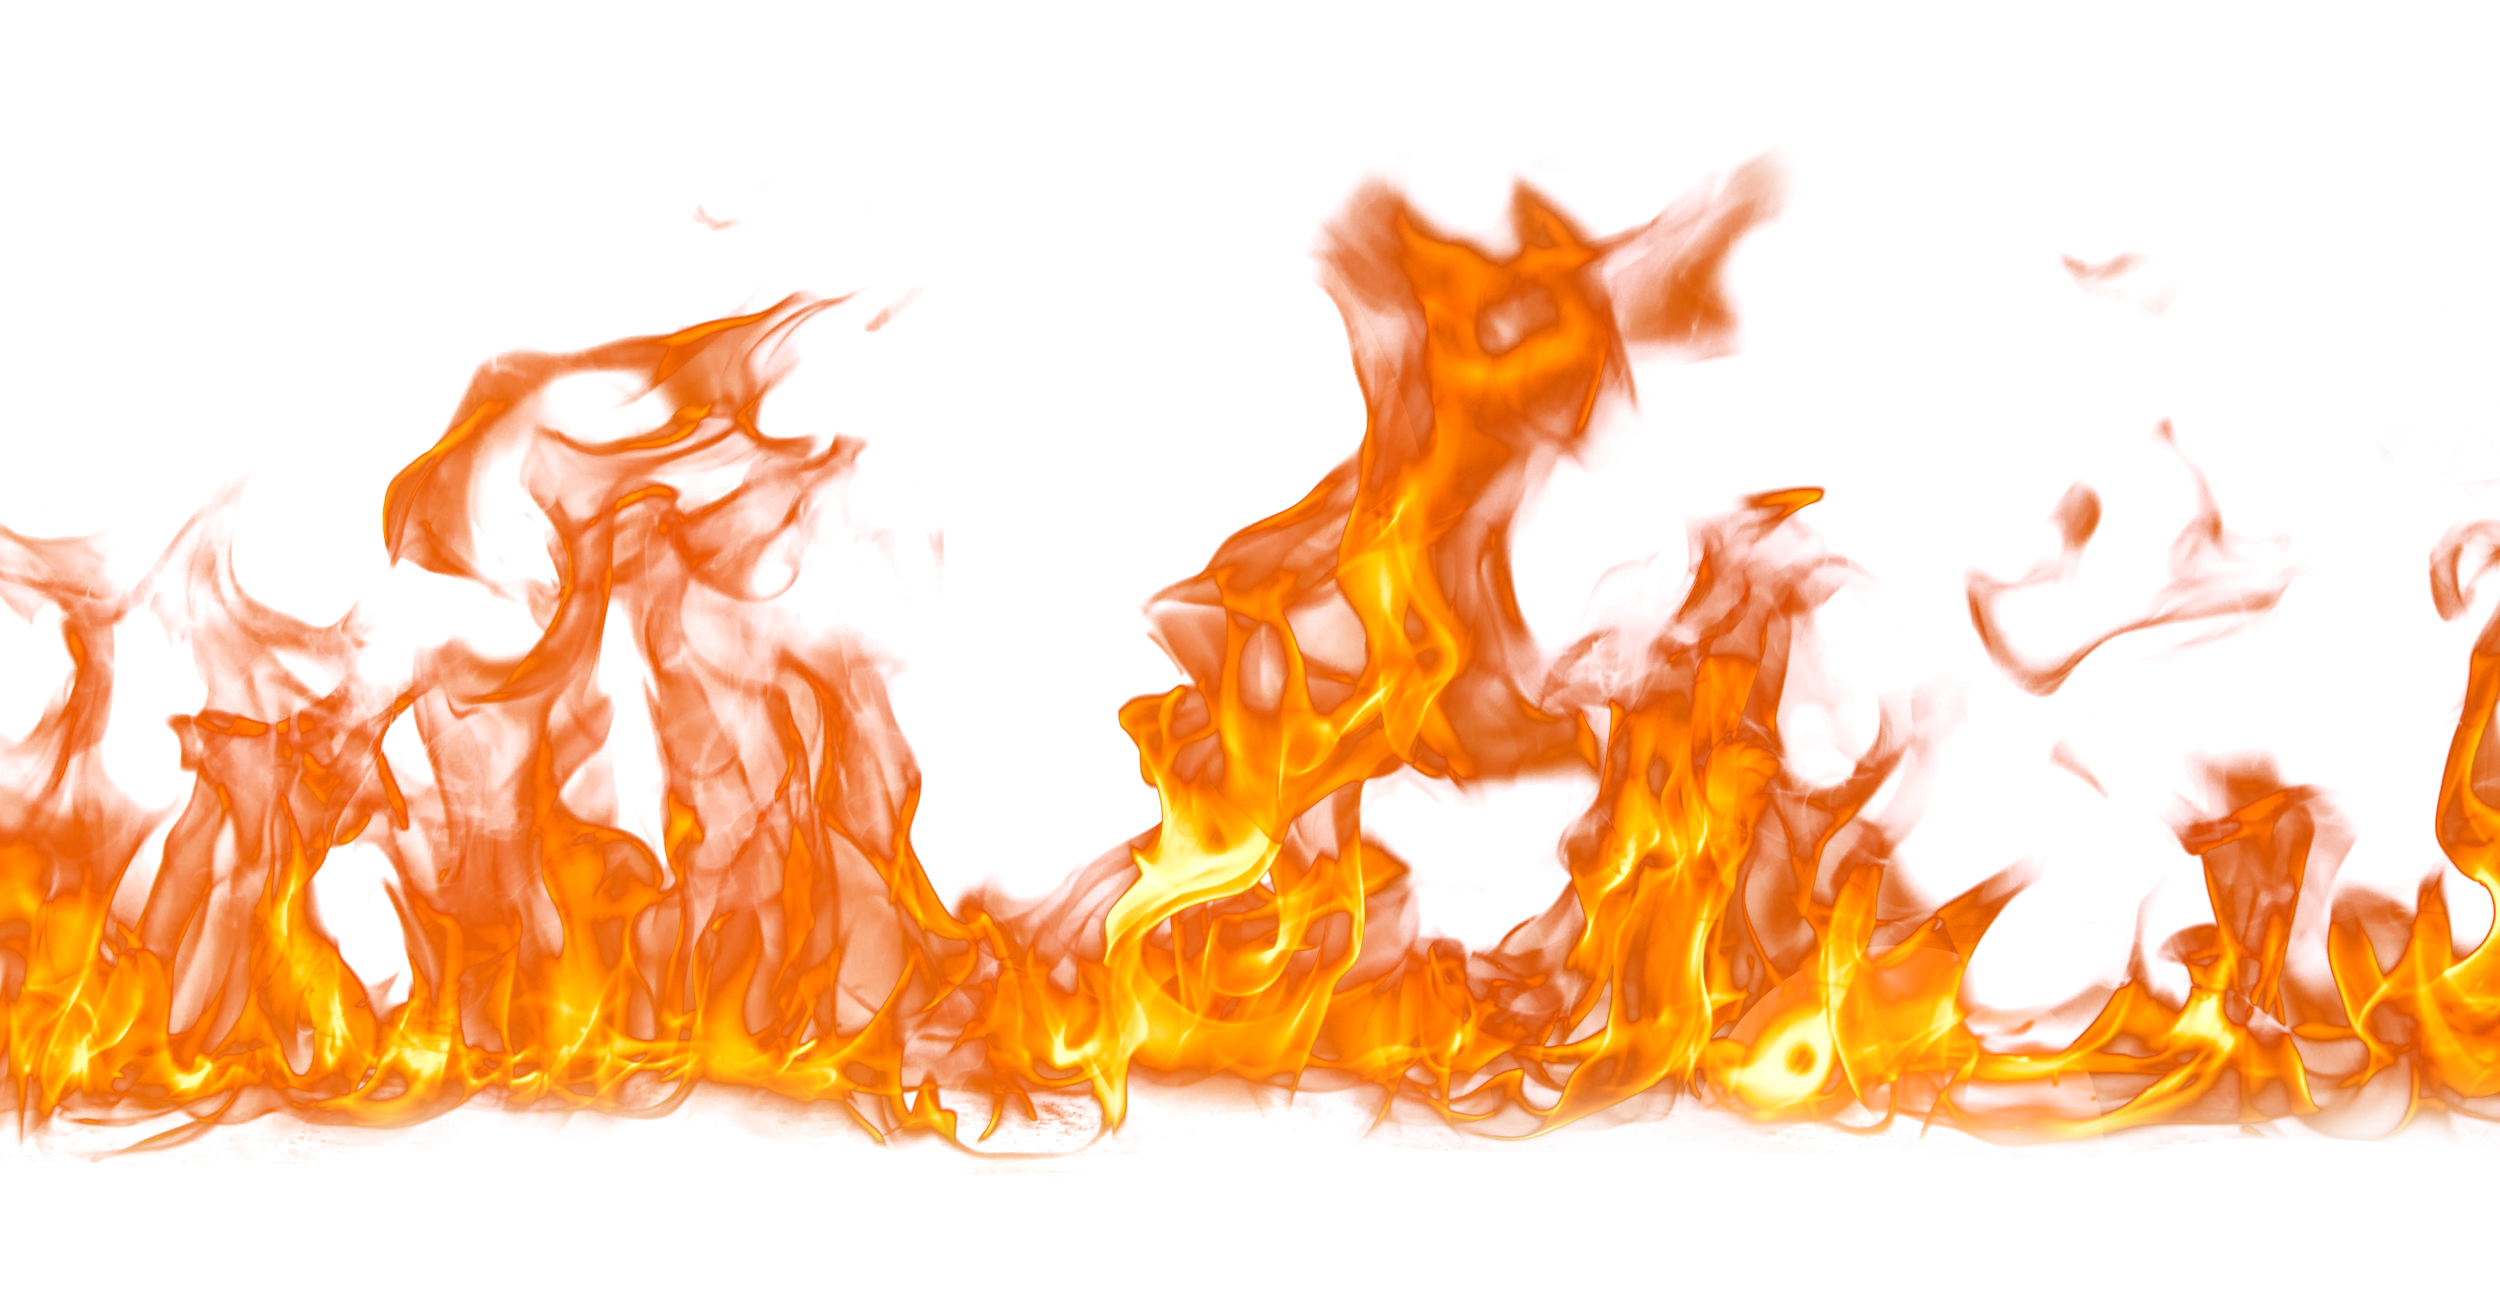 Flame images free download. Fire png free download